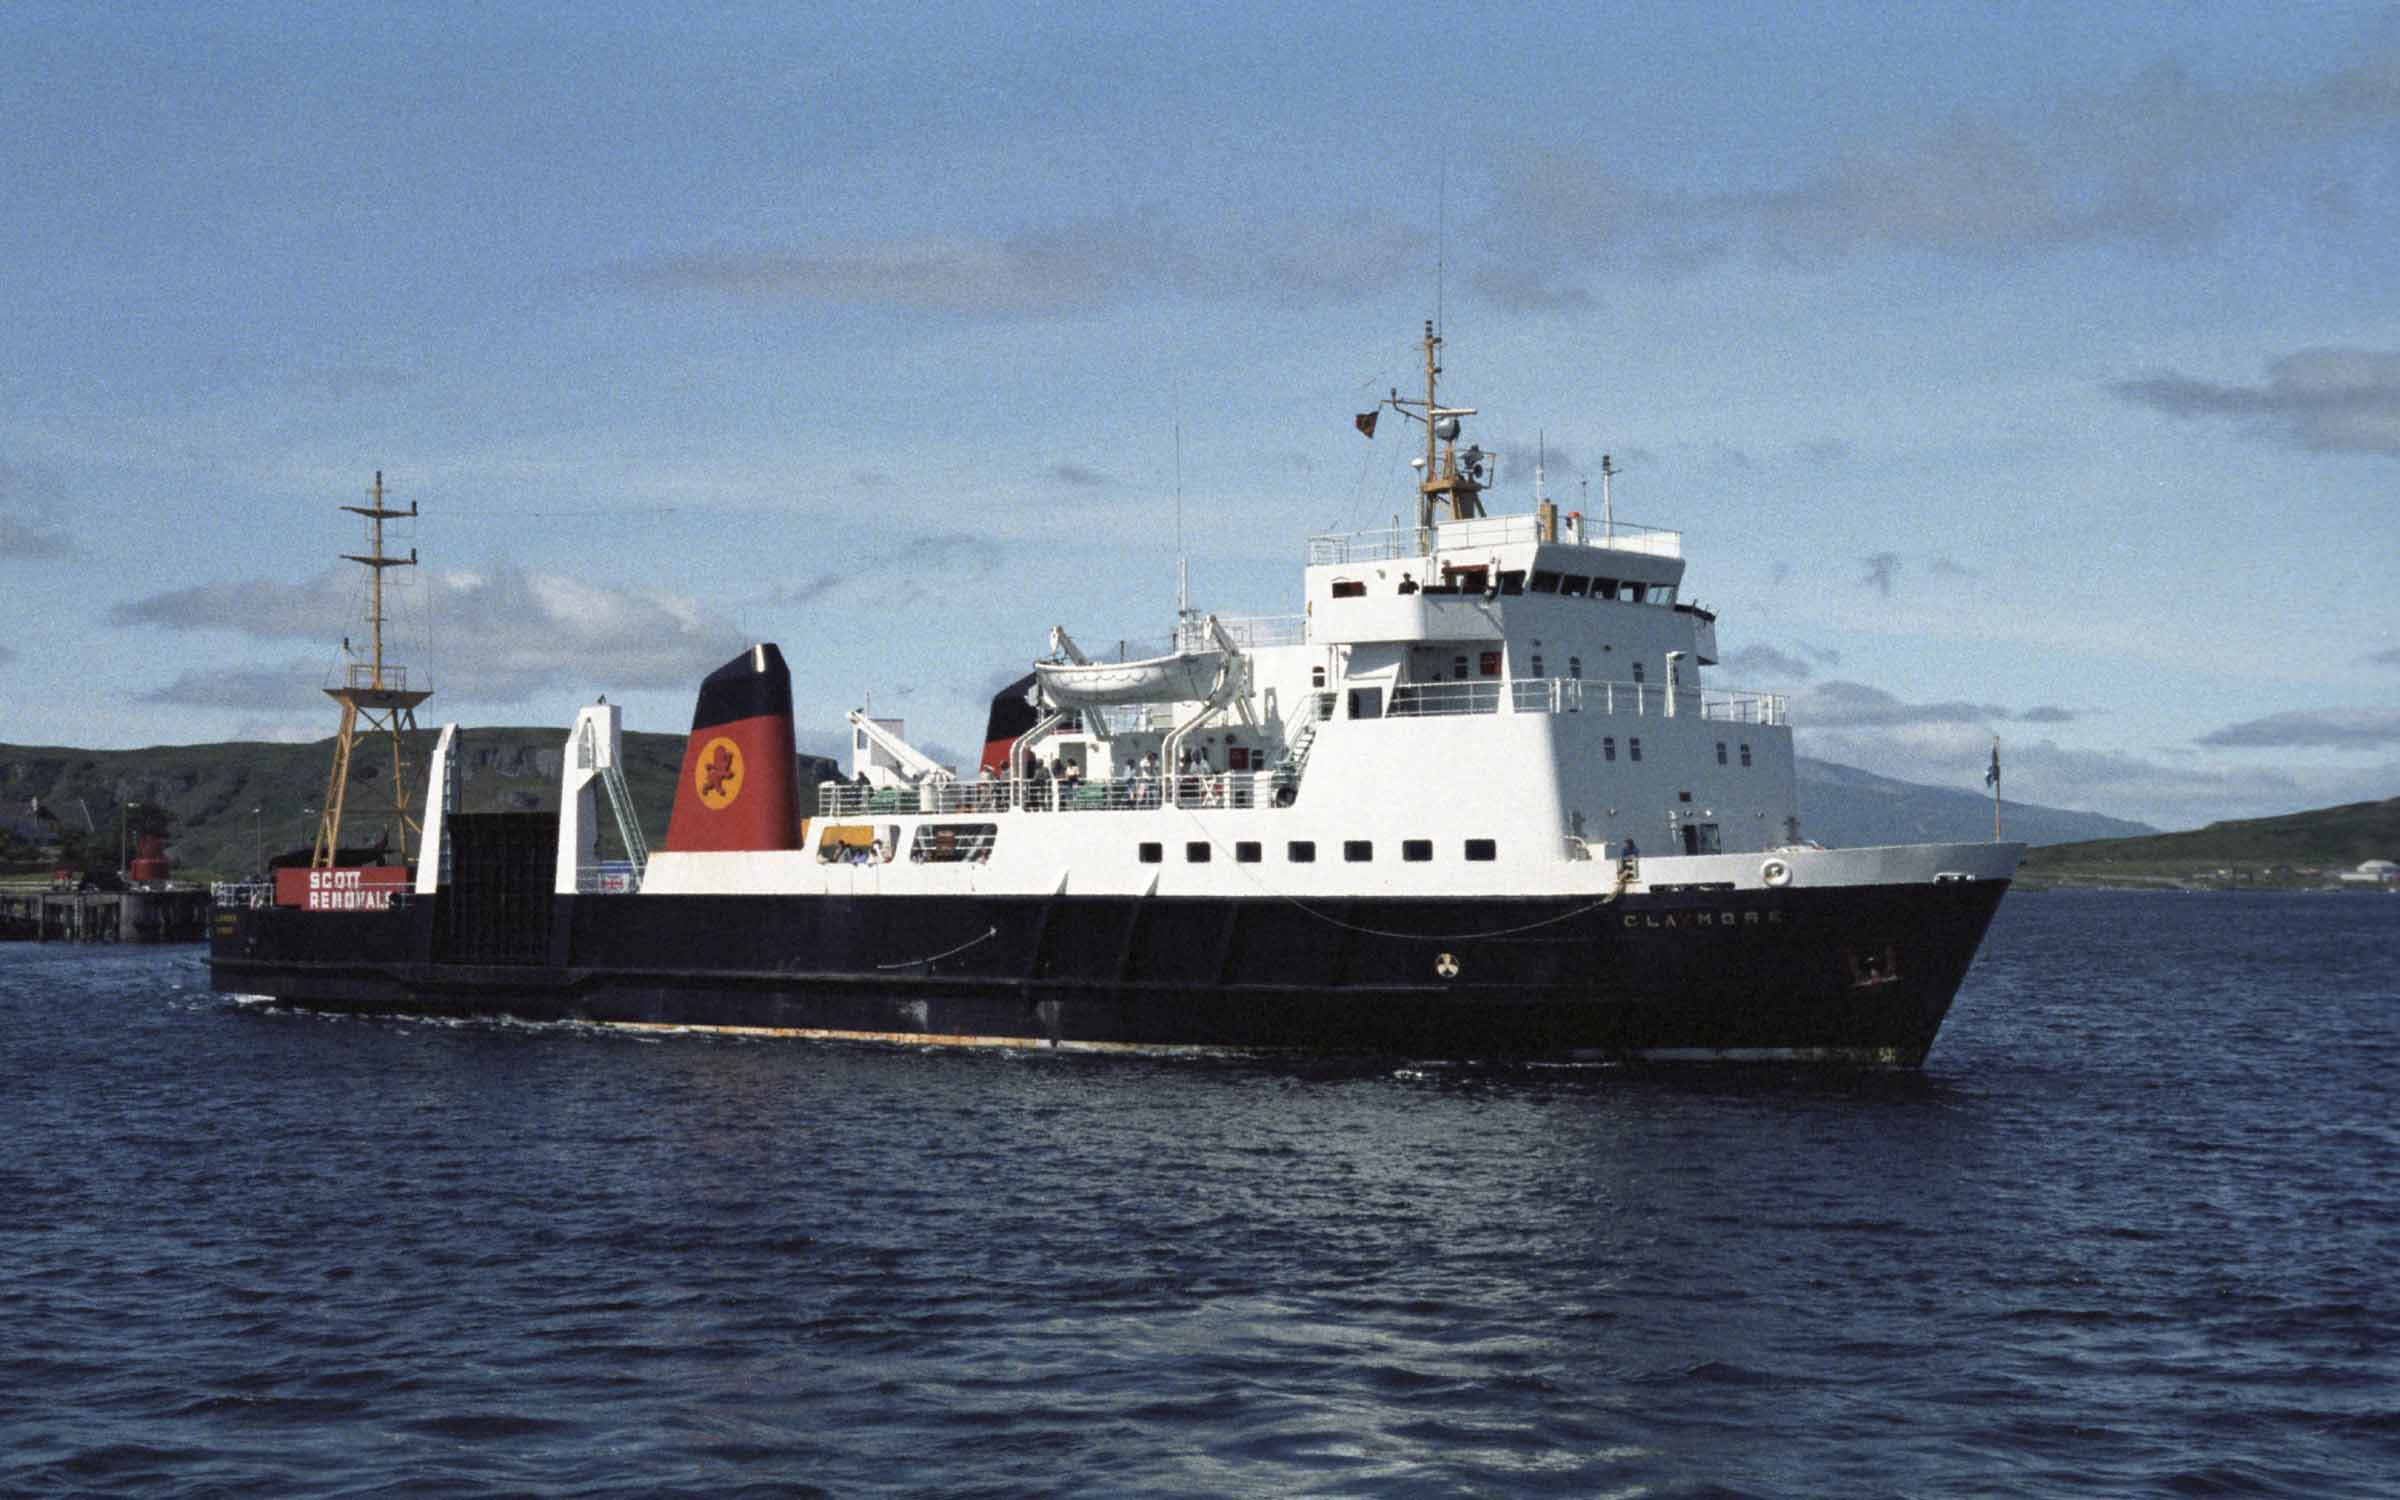 Claymore arriving at Oban (Ships of CalMac)